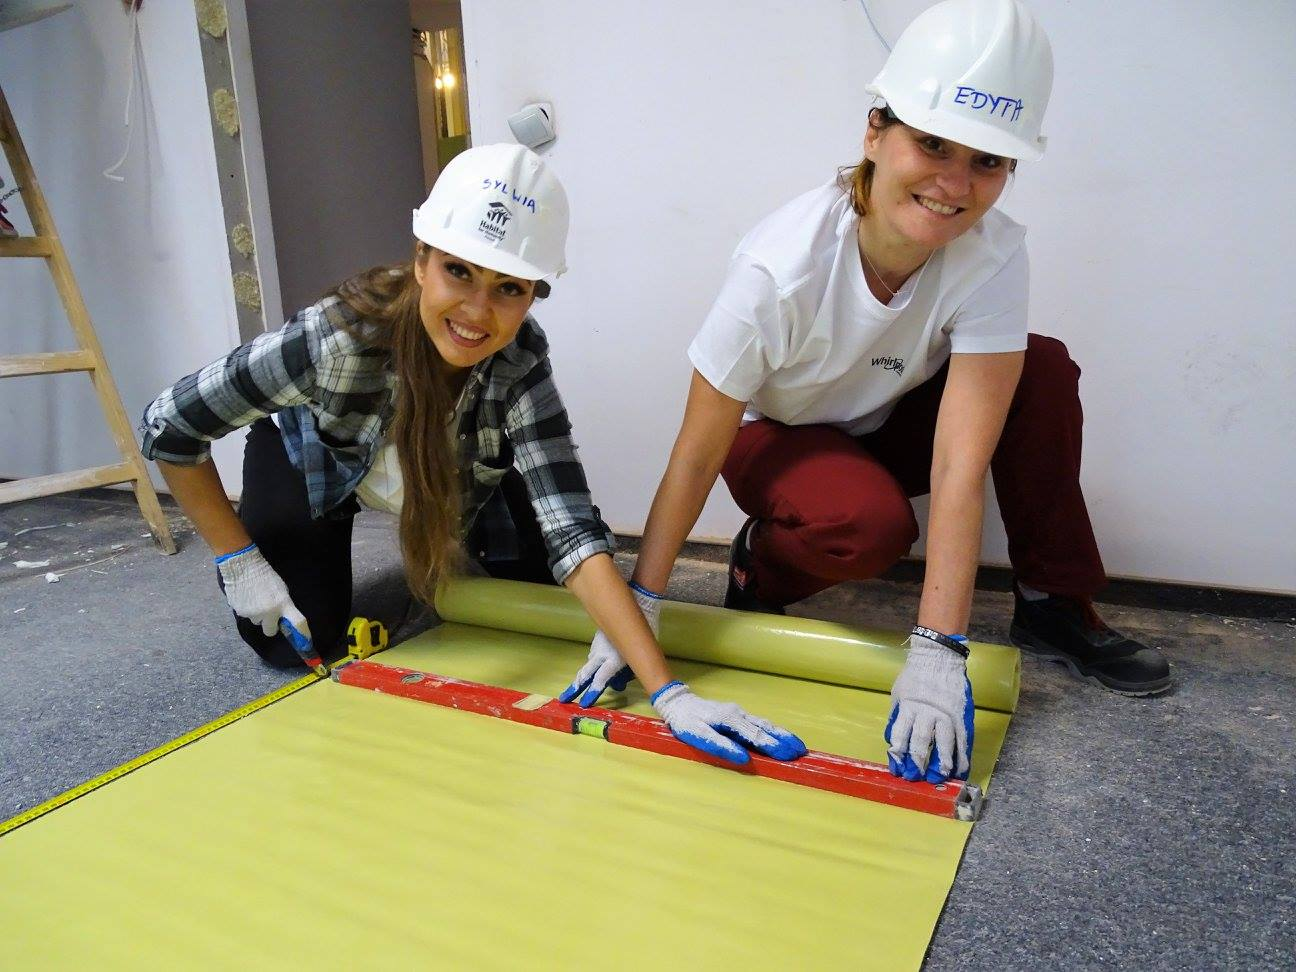 Whirlpool EMEA and Habitat for Humanity Poland together to help those in need